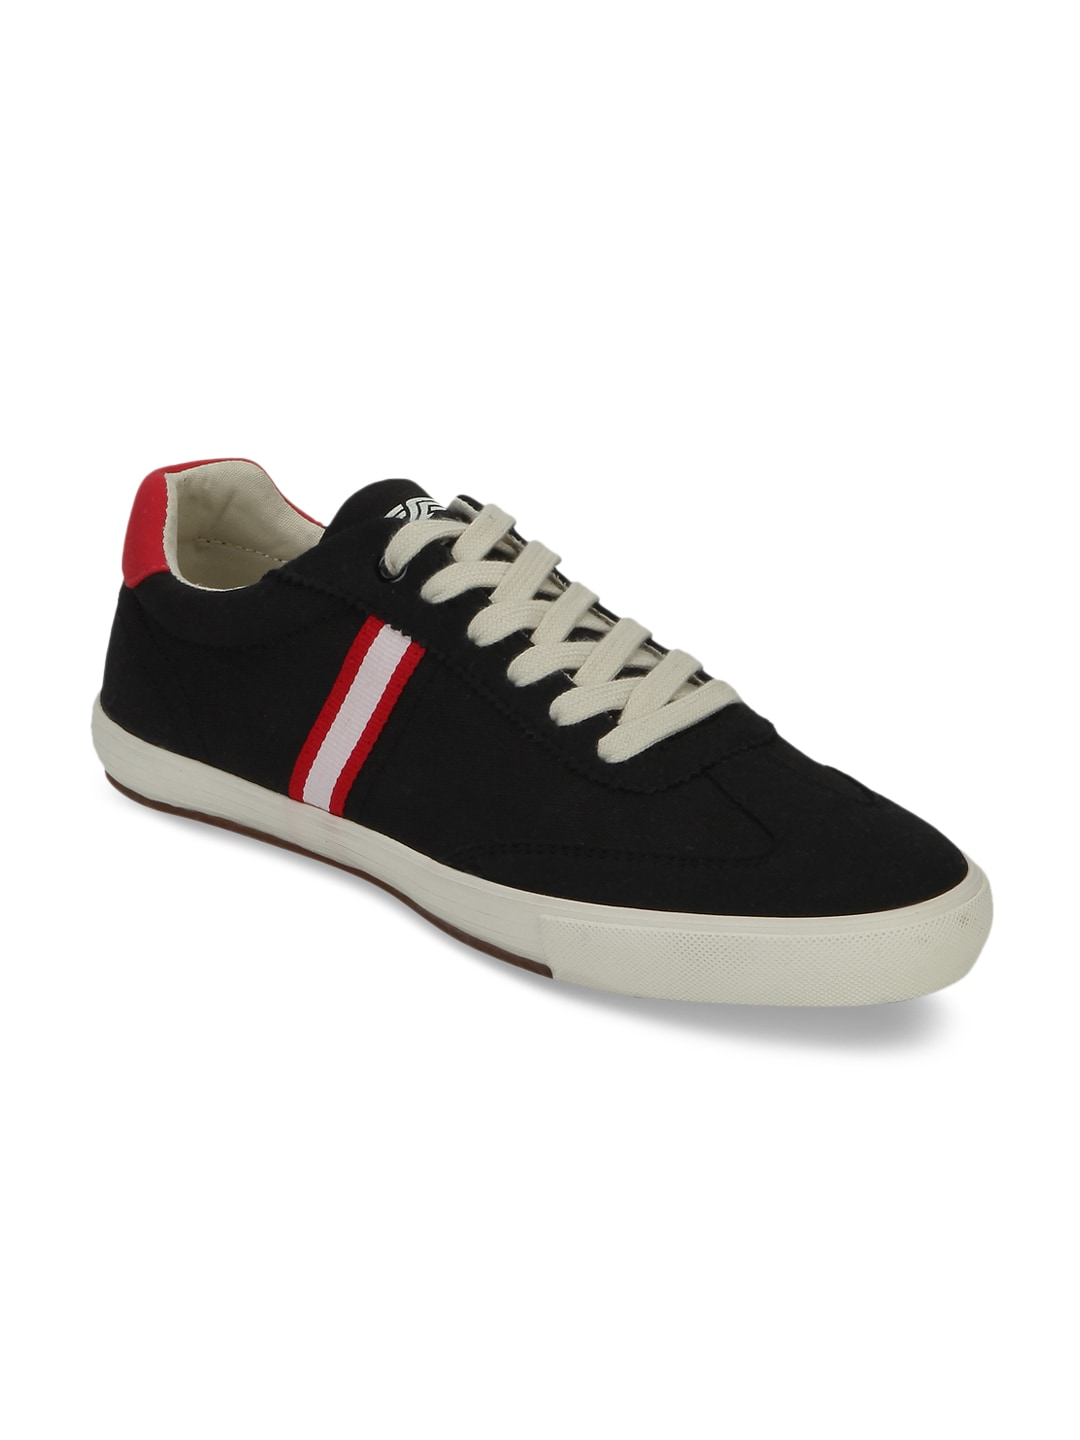 Red Tape Men Black Sneakers image